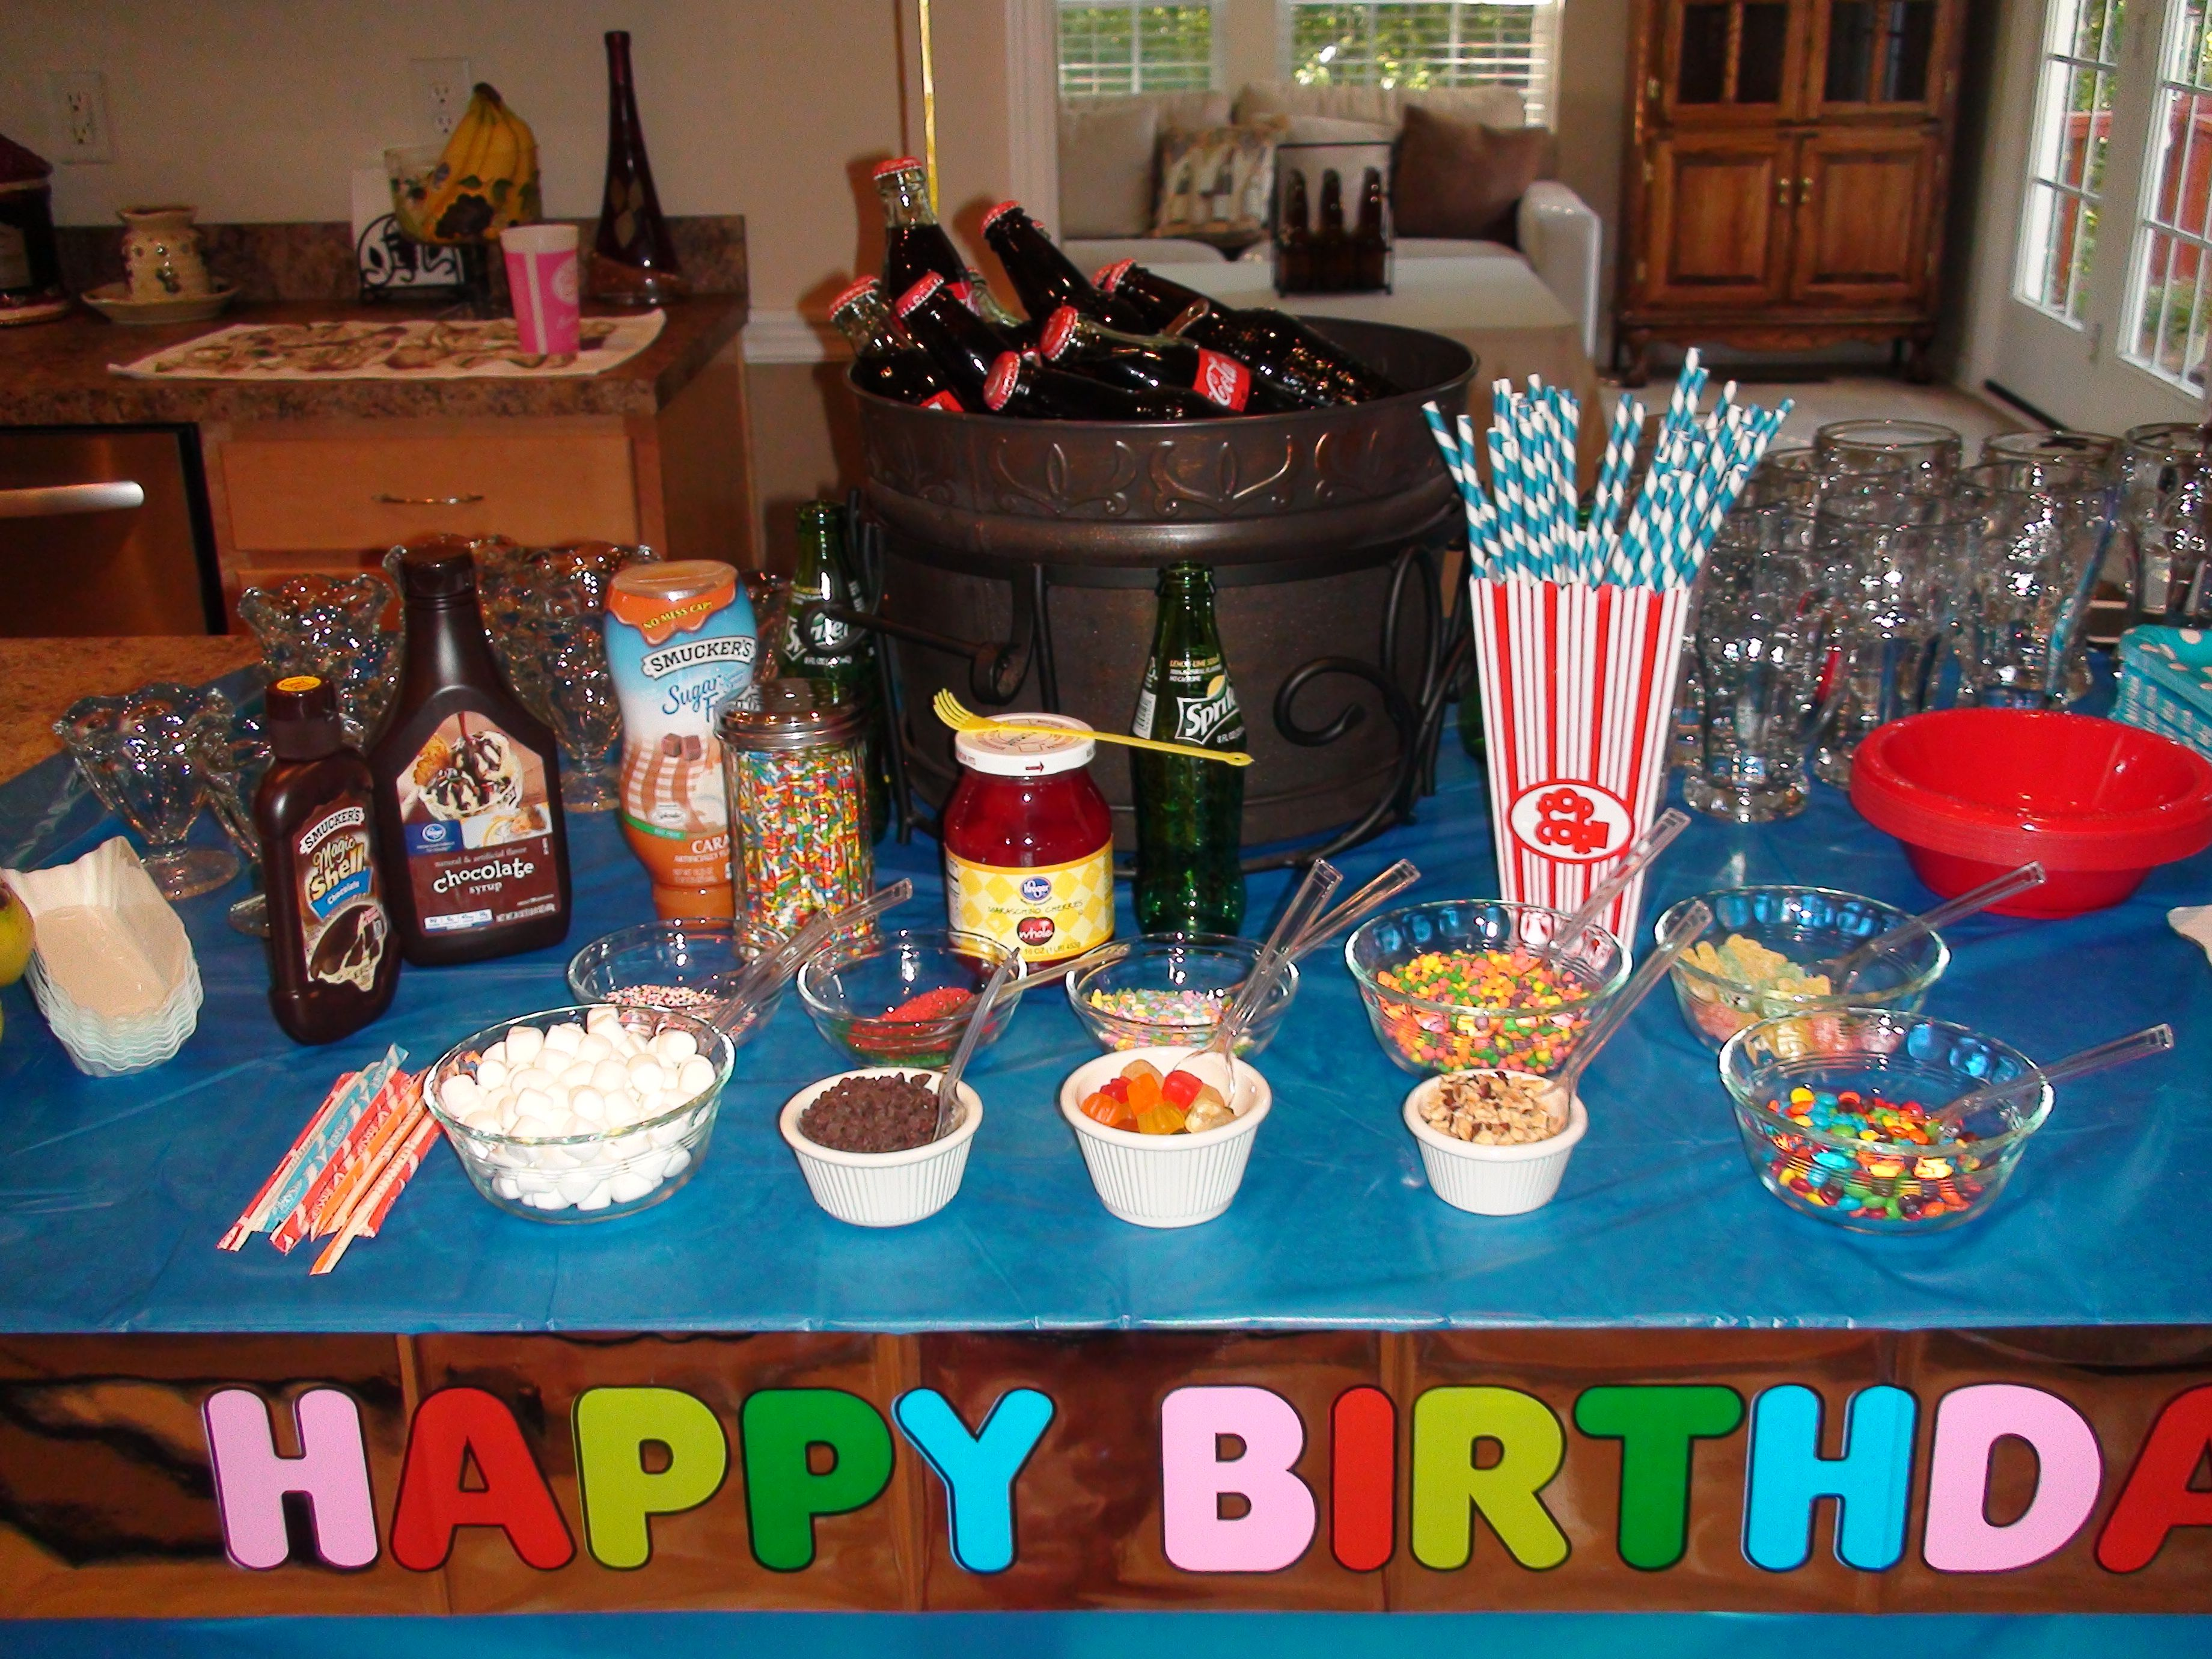 12 Year Old Party, Root Beer Floats, Banana Splits, Ice